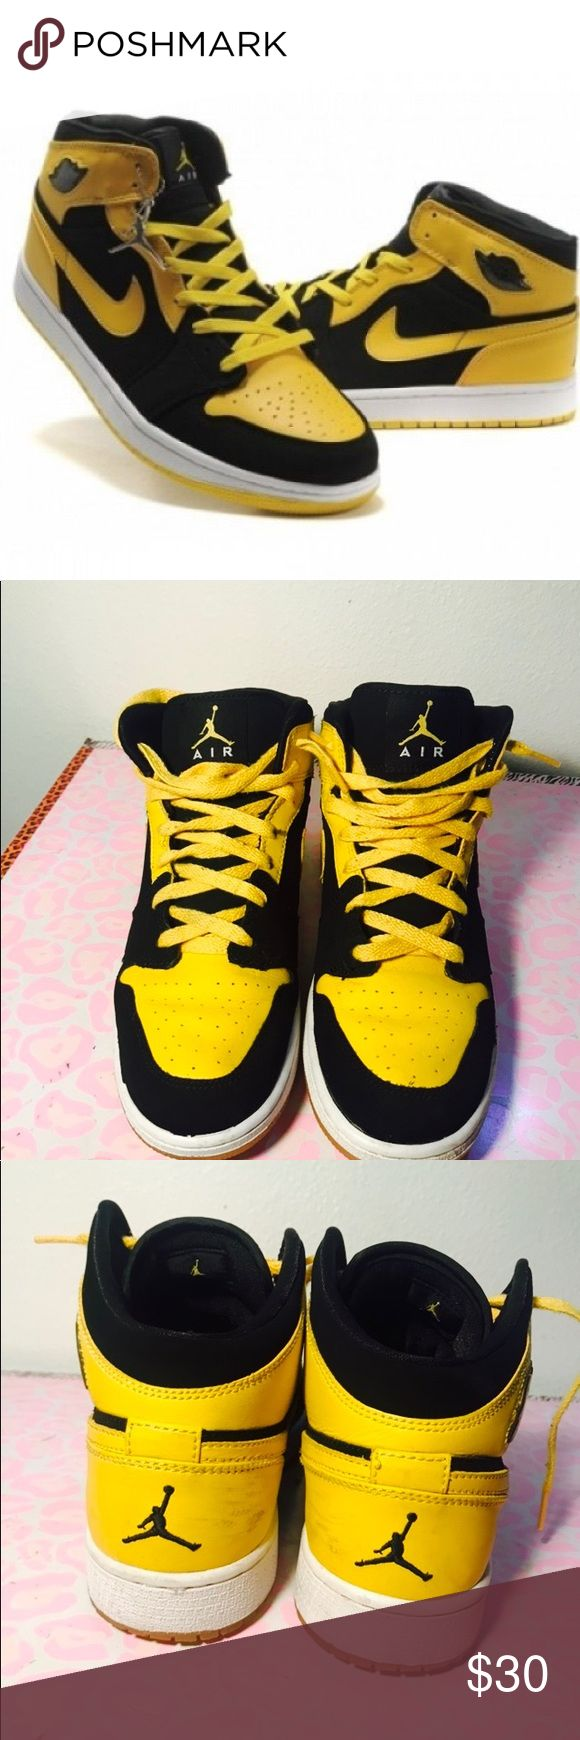 Air Jordan 1 Retro Black/Maise BMP PRICE IS FIRM! Authentic Nike Air Jordan 1 Retro. 'Old Love, New Love' BMP. Slight sole separation that can be easily fixed. Overall still has a lot of life left. No box. Size is 6Y or 7.5 in women's. Color is Black and vibrant yellow. Will clean before shipping out. Priced to sell. Air Jordan Shoes Athletic Shoes